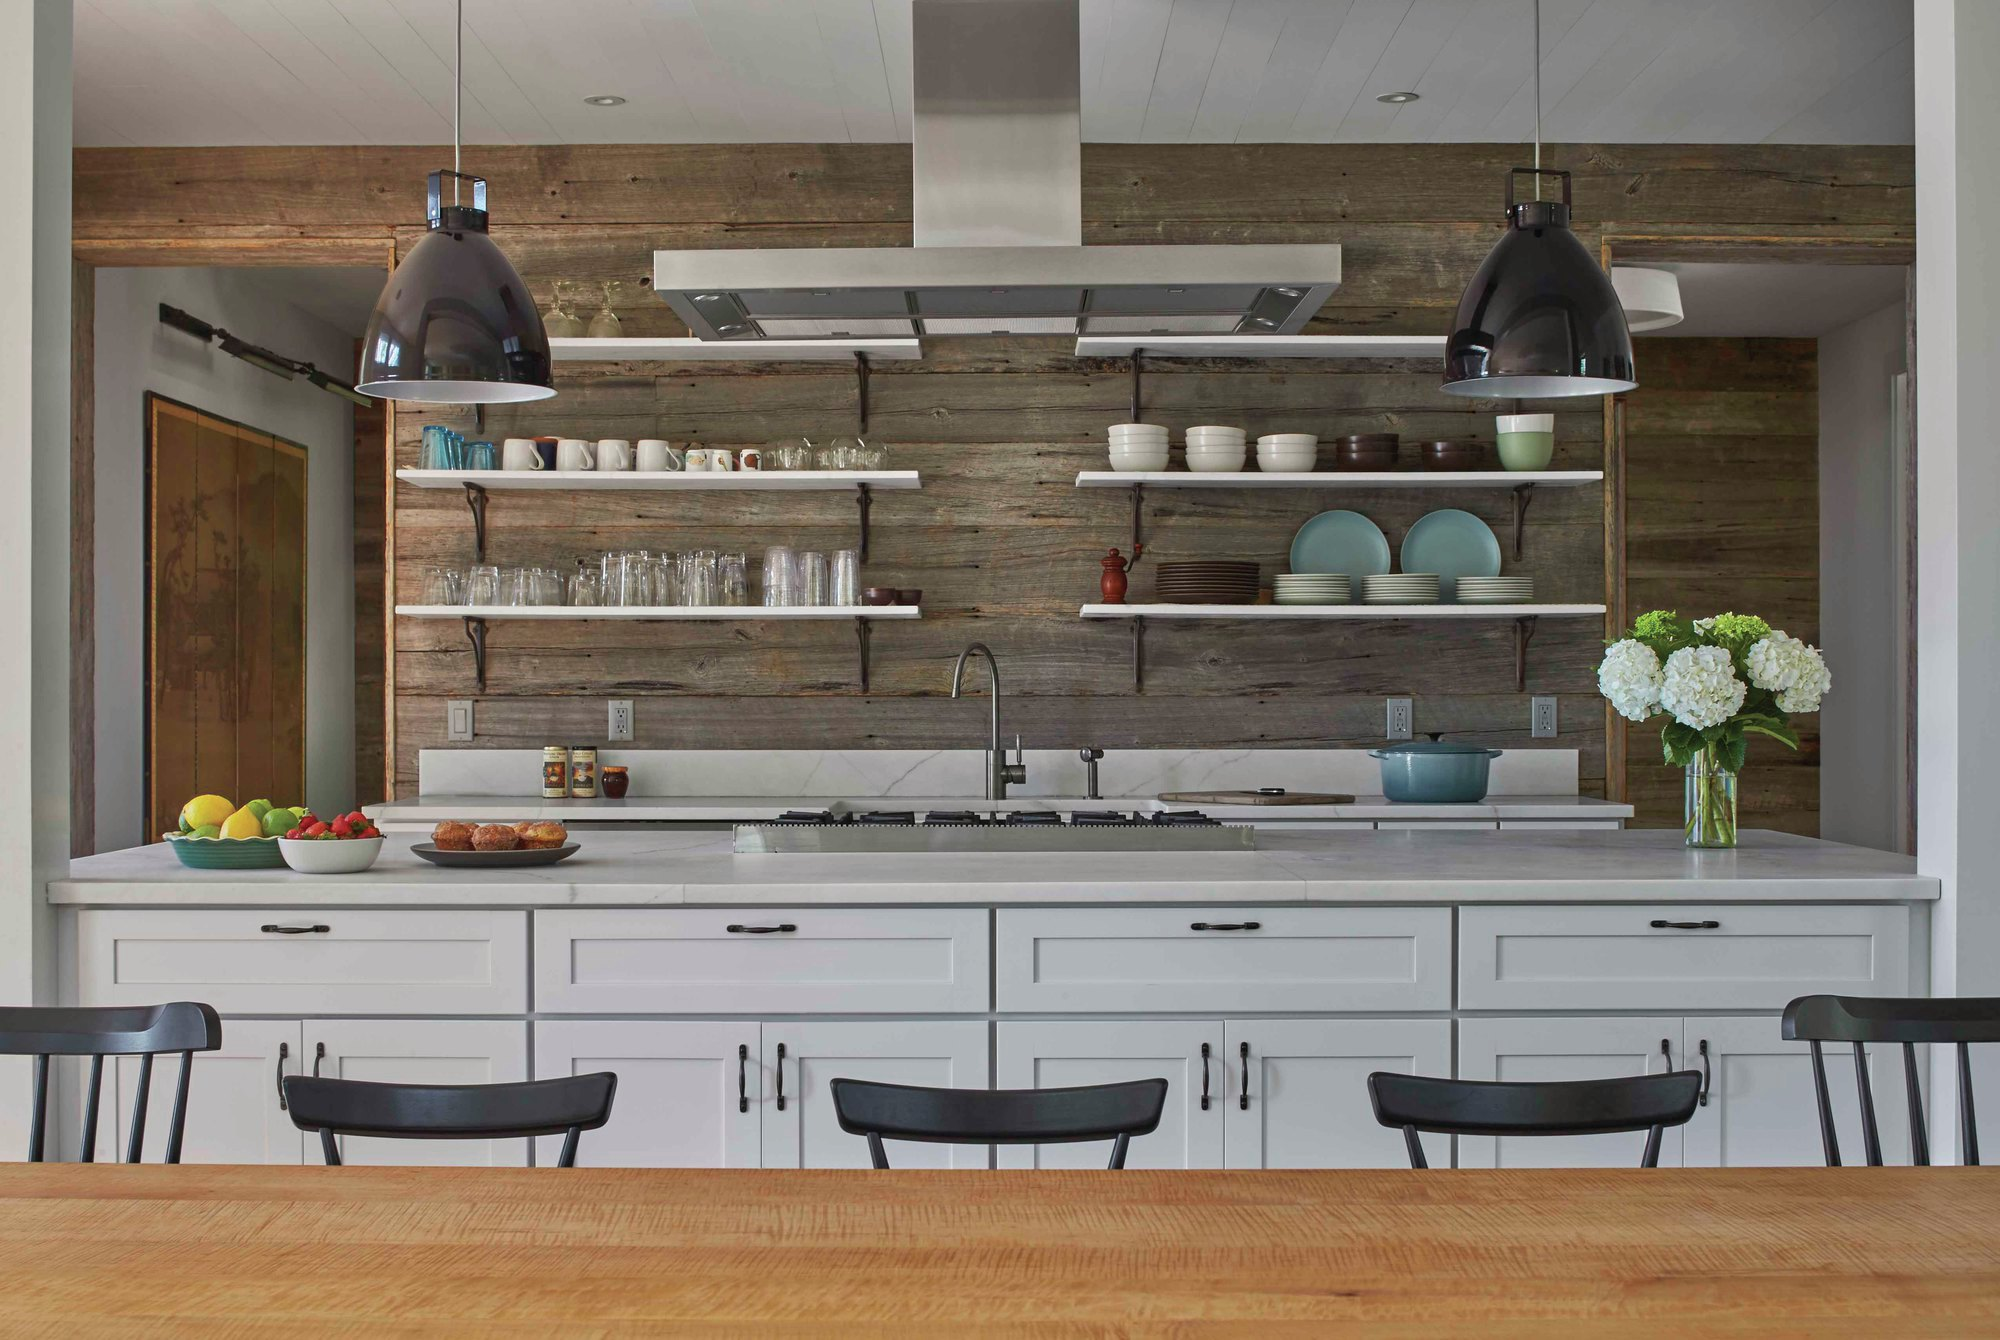 Modern Farmhouse Decor Tips We Learned From Chip And Joanna Gaines | Custom  Home Magazine | Design, Interior Design, Kitchen, Countertops, Sinks, Wood